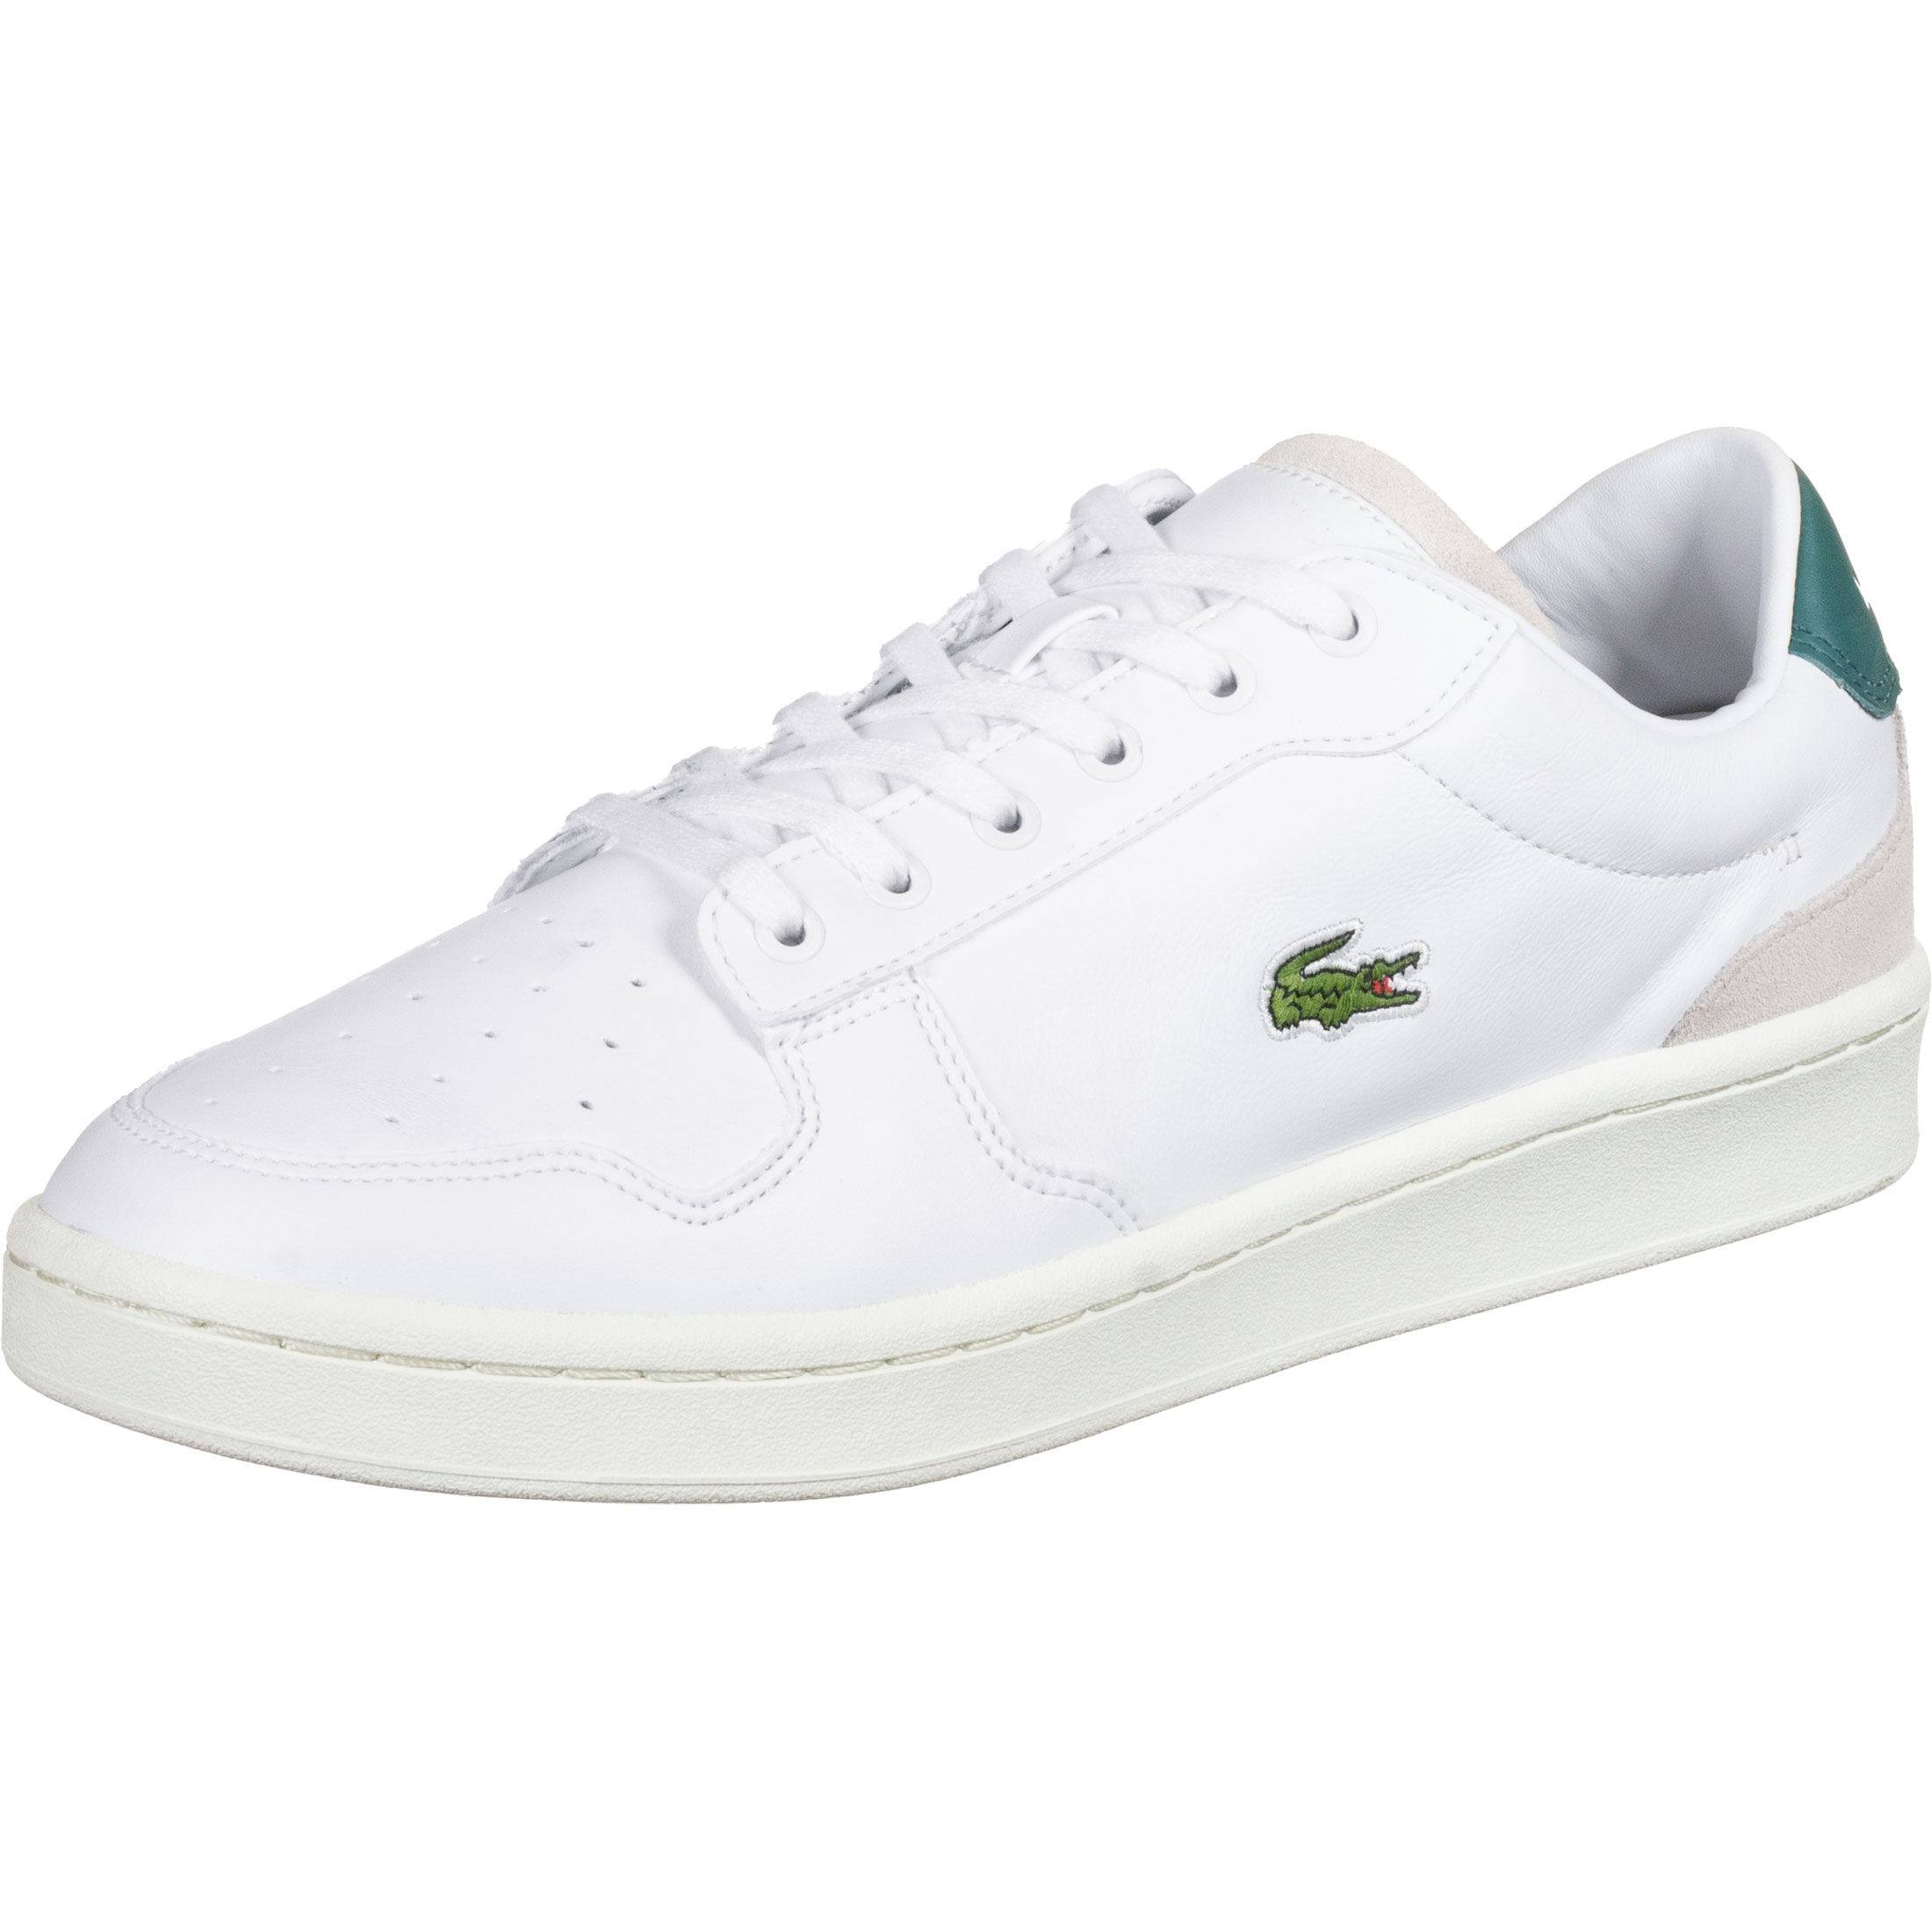 Lacoste Masters Cup, 46 EU, homme, blanc